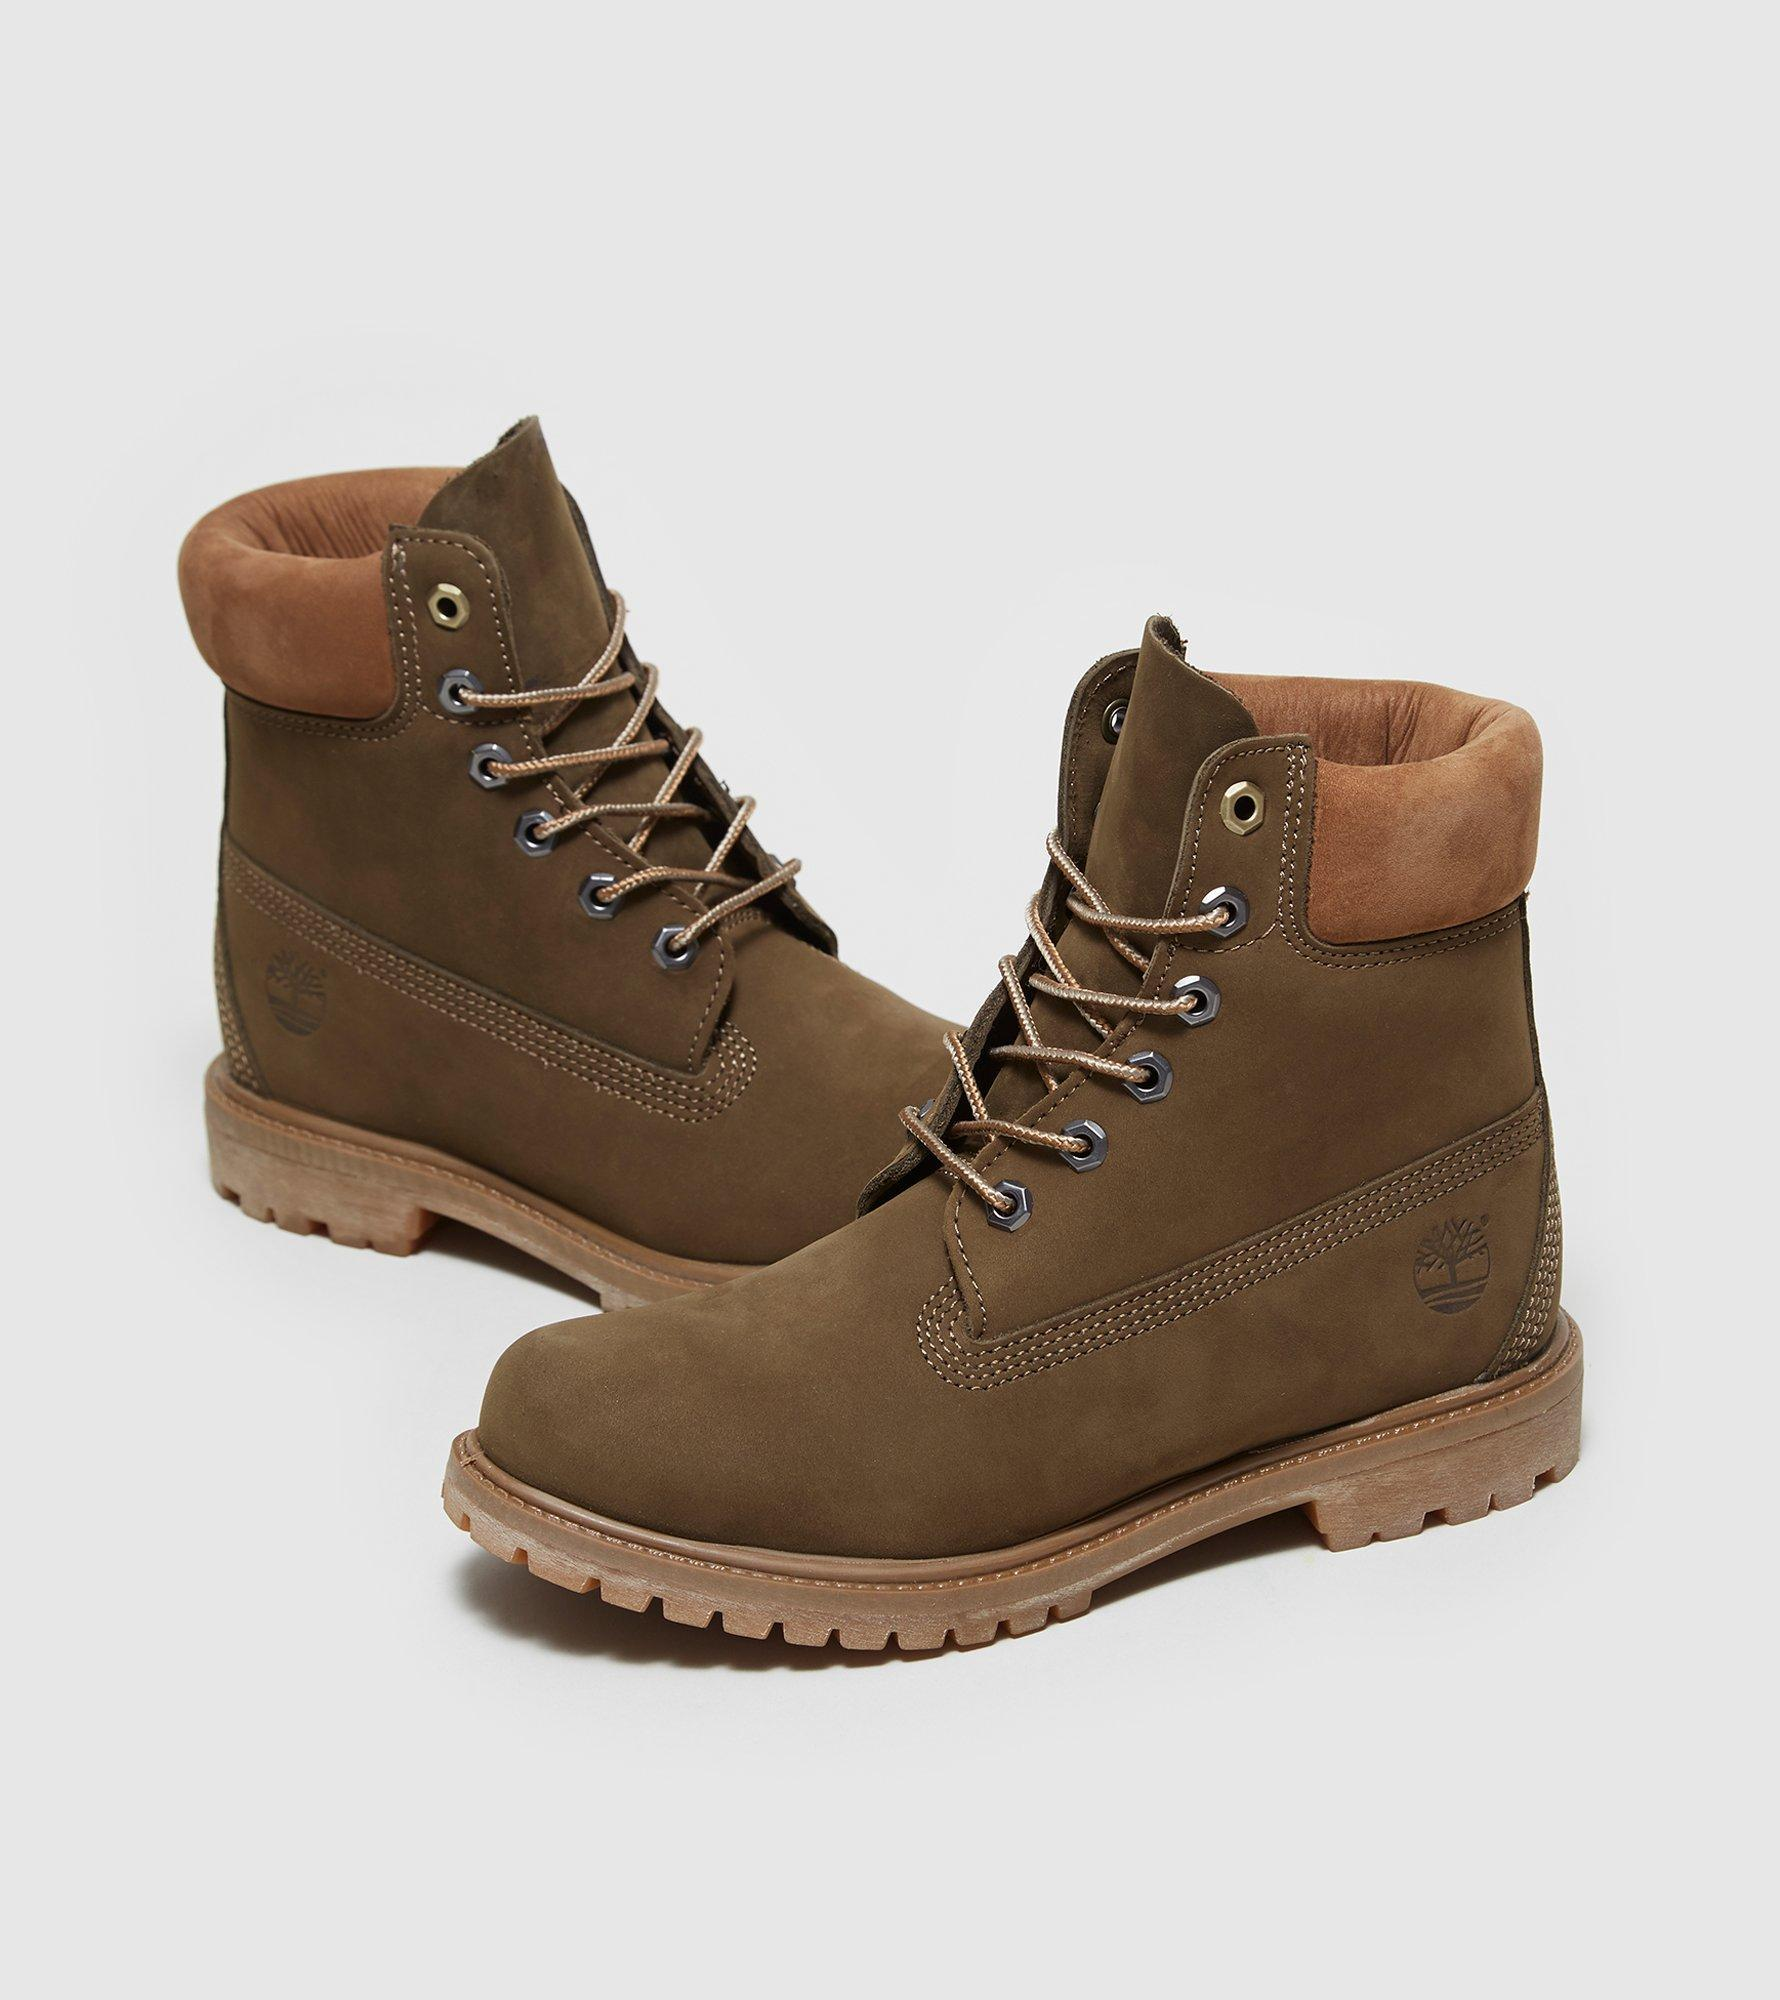 Awesome Timberland Mens Olive Green Waterproof Ankle Boots Lace Up Ladies Nubuck Shoes | EBay